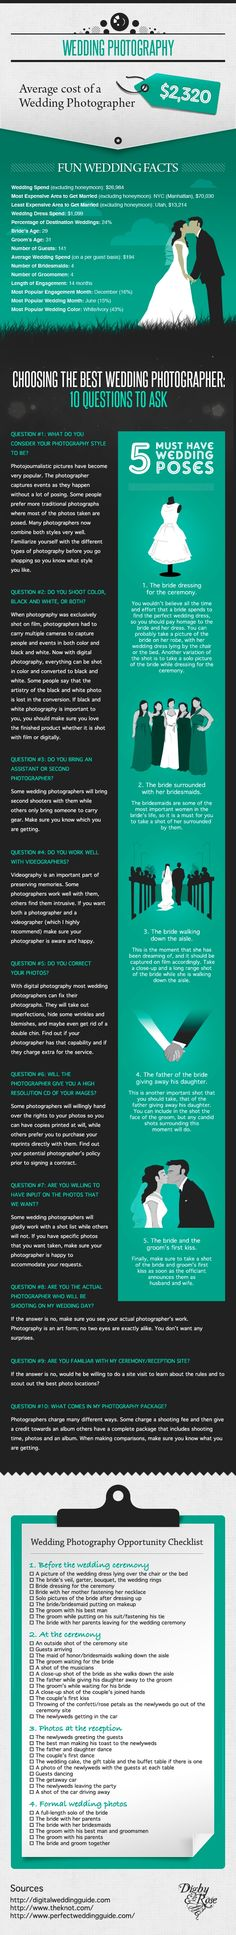 Wedding Photography checklist and facts